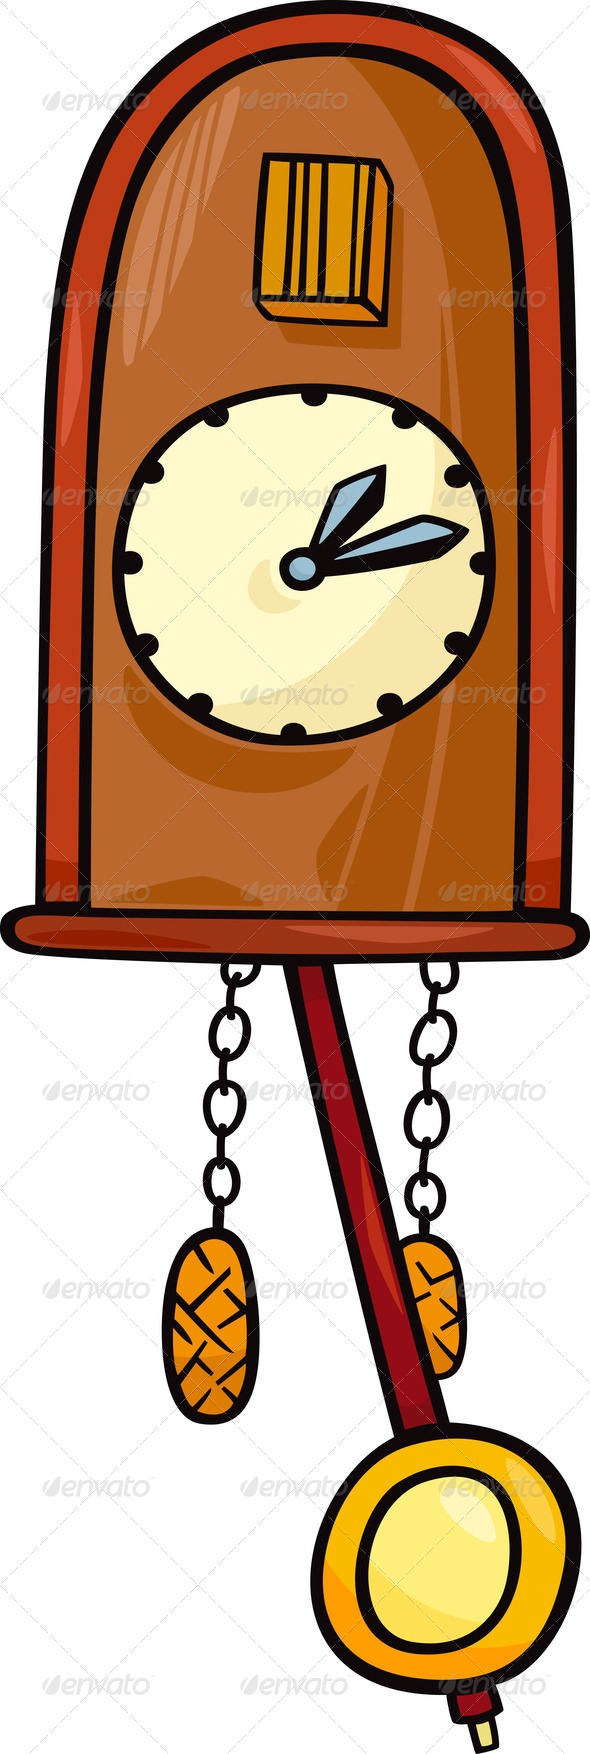 Cuckoo Clipart   Clipart Panda - Free Clipart Images